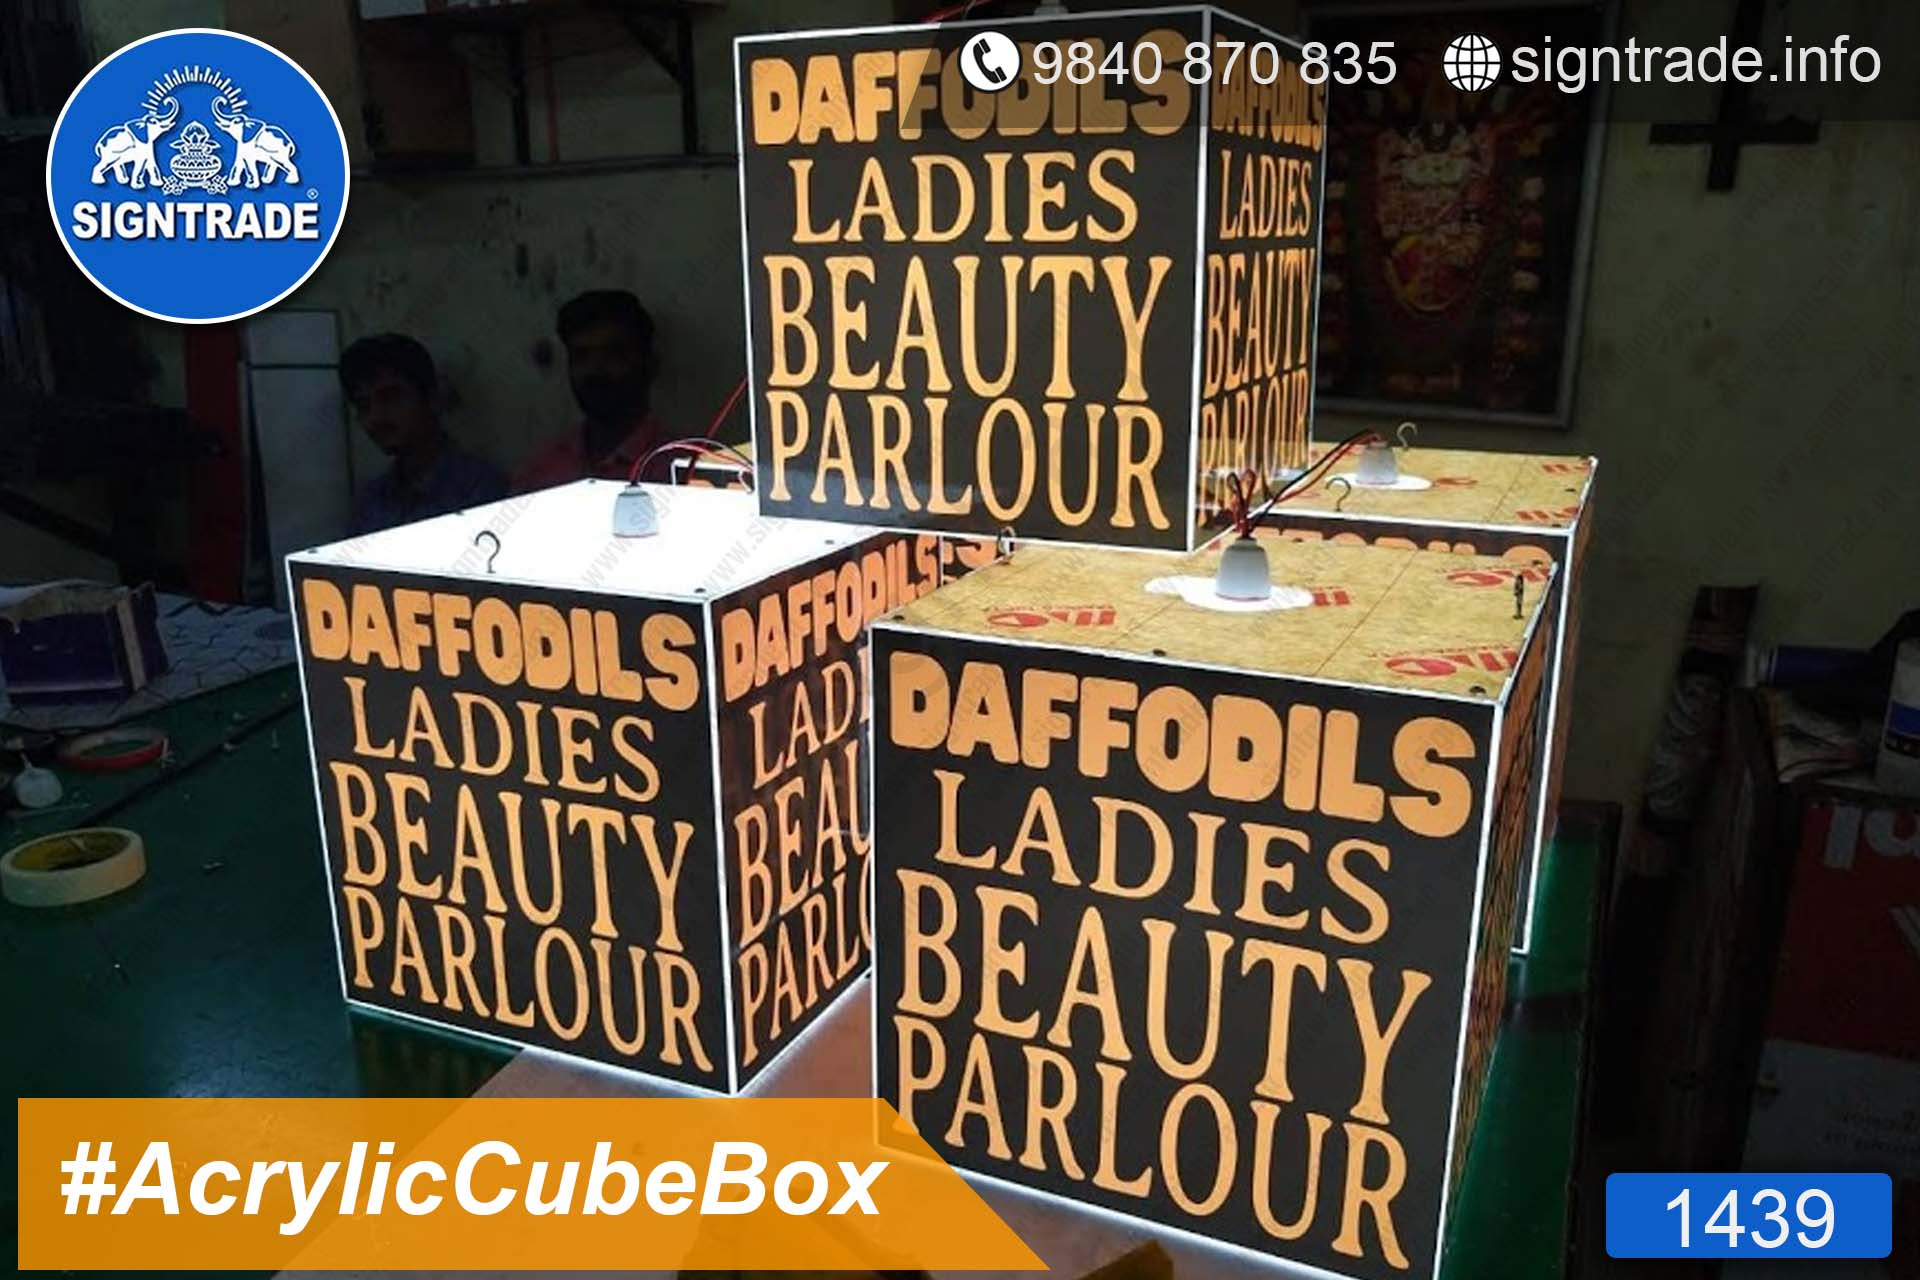 1439, Daffodils Ladies Beauty Parlour - Acrylic Cube Box